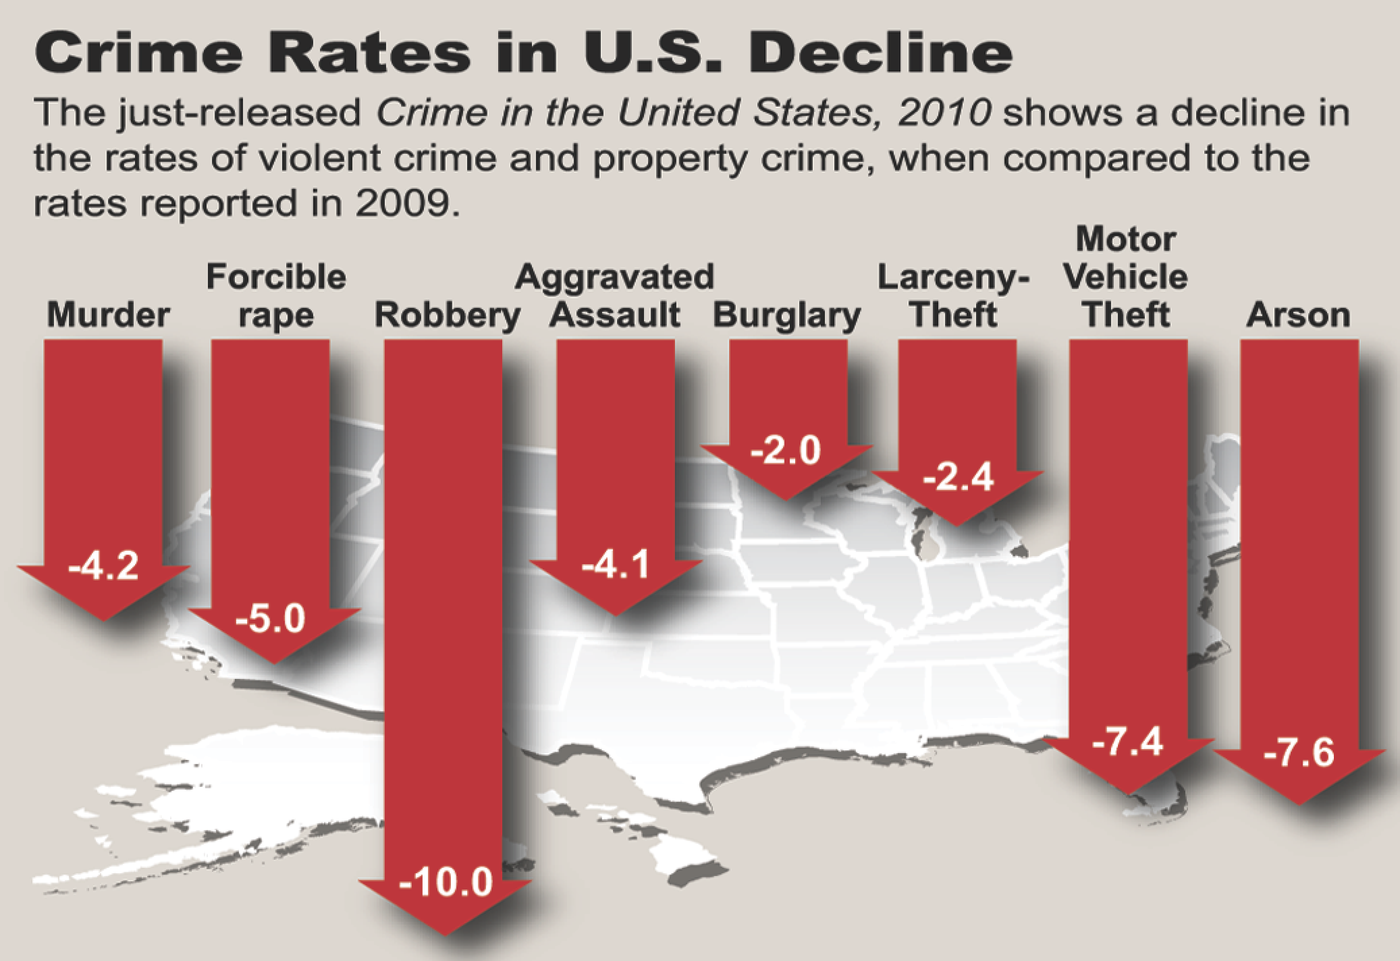 The just-released Crime in the United States, 2010 shows a decline in the rates of violent crime and property crime, when compared to the rates reported in 2009.